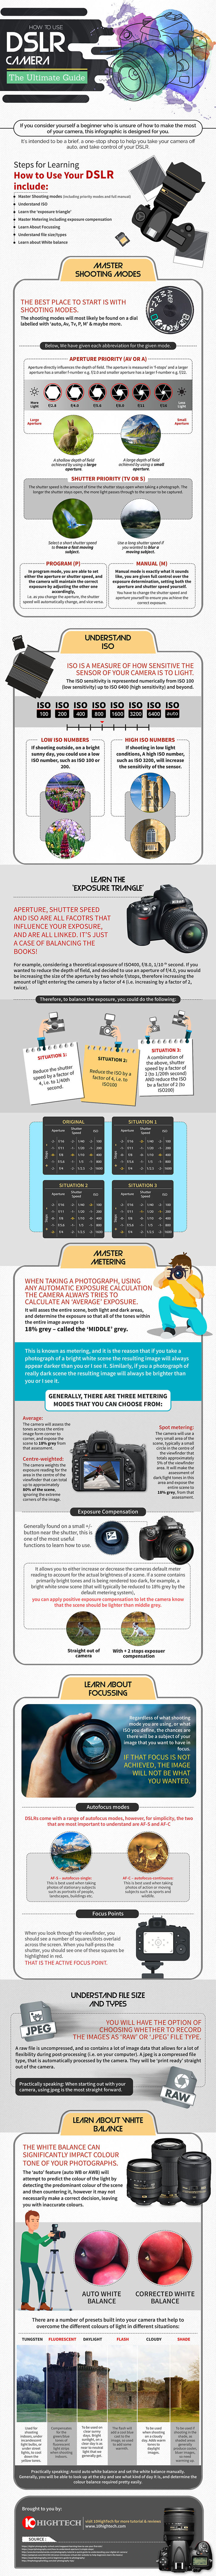 Learn Dslr Camera Manually Use – Beginners Guide [infographic]